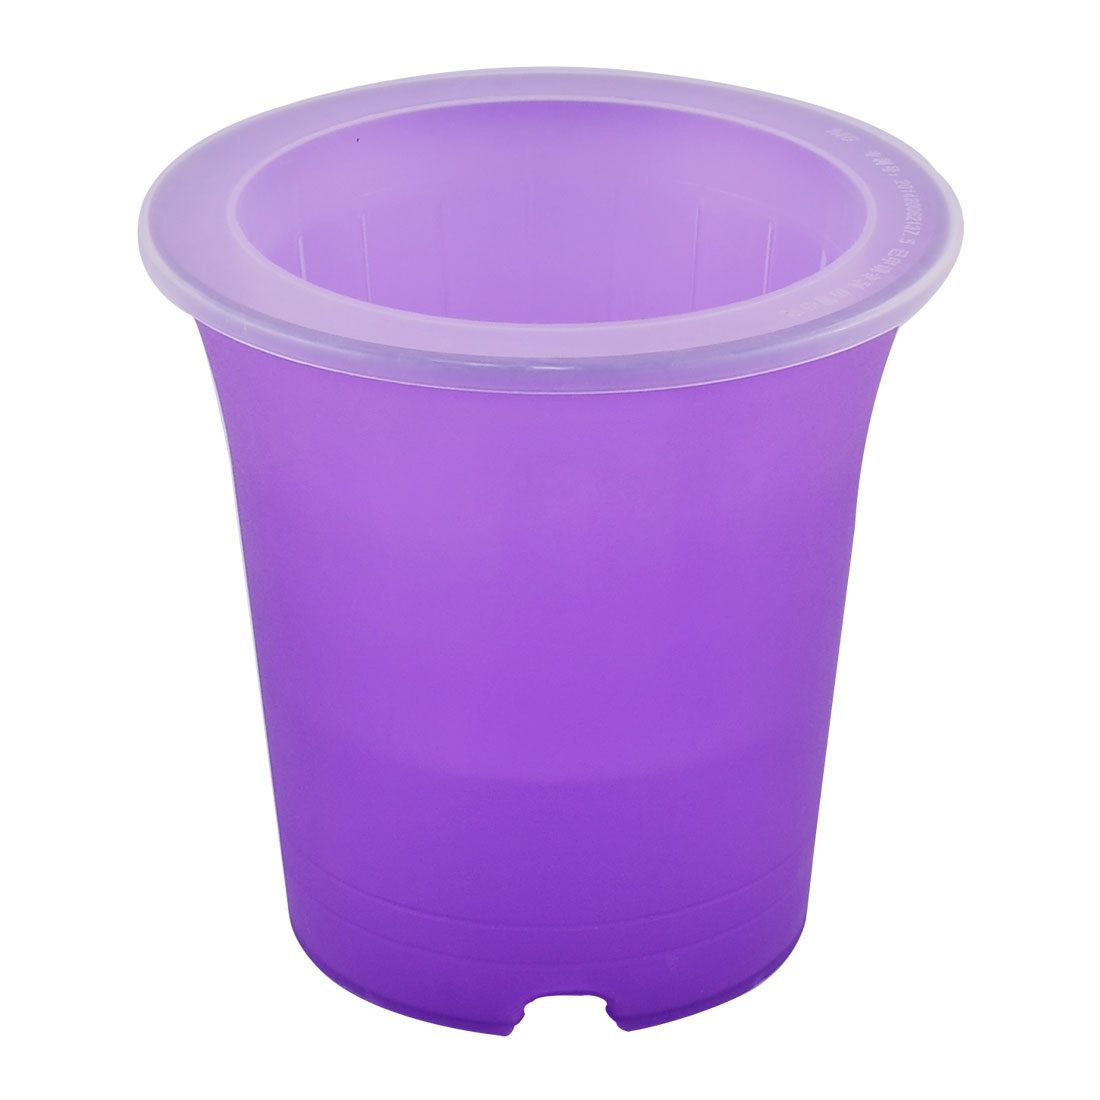 Home Windowsill Plastic Cylinder Self Watering Planter Flowerpot Purple